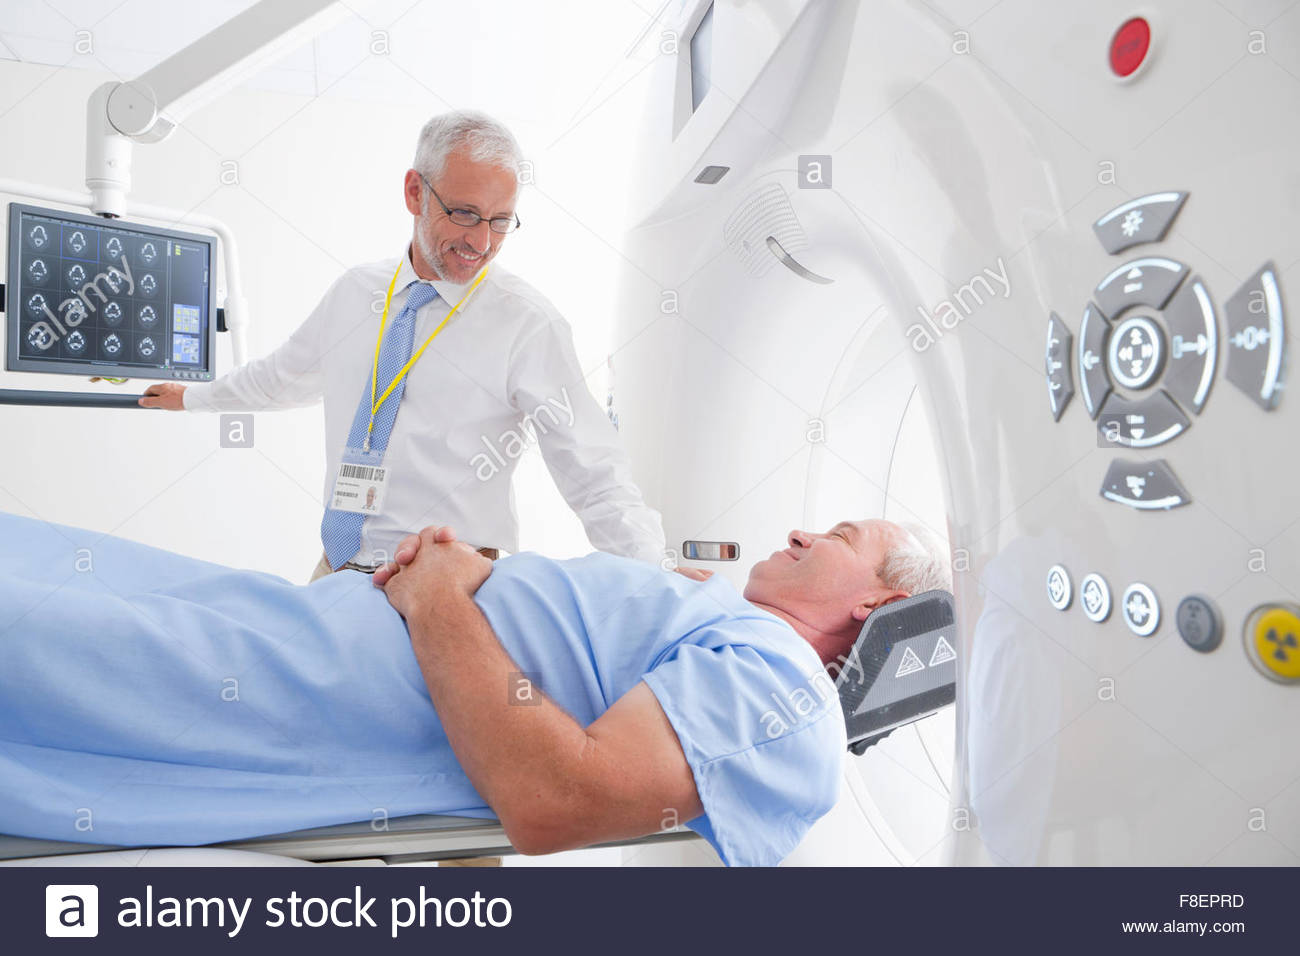 Doctor and patient discussing CT scan digital brain scan in hospital - Stock Image